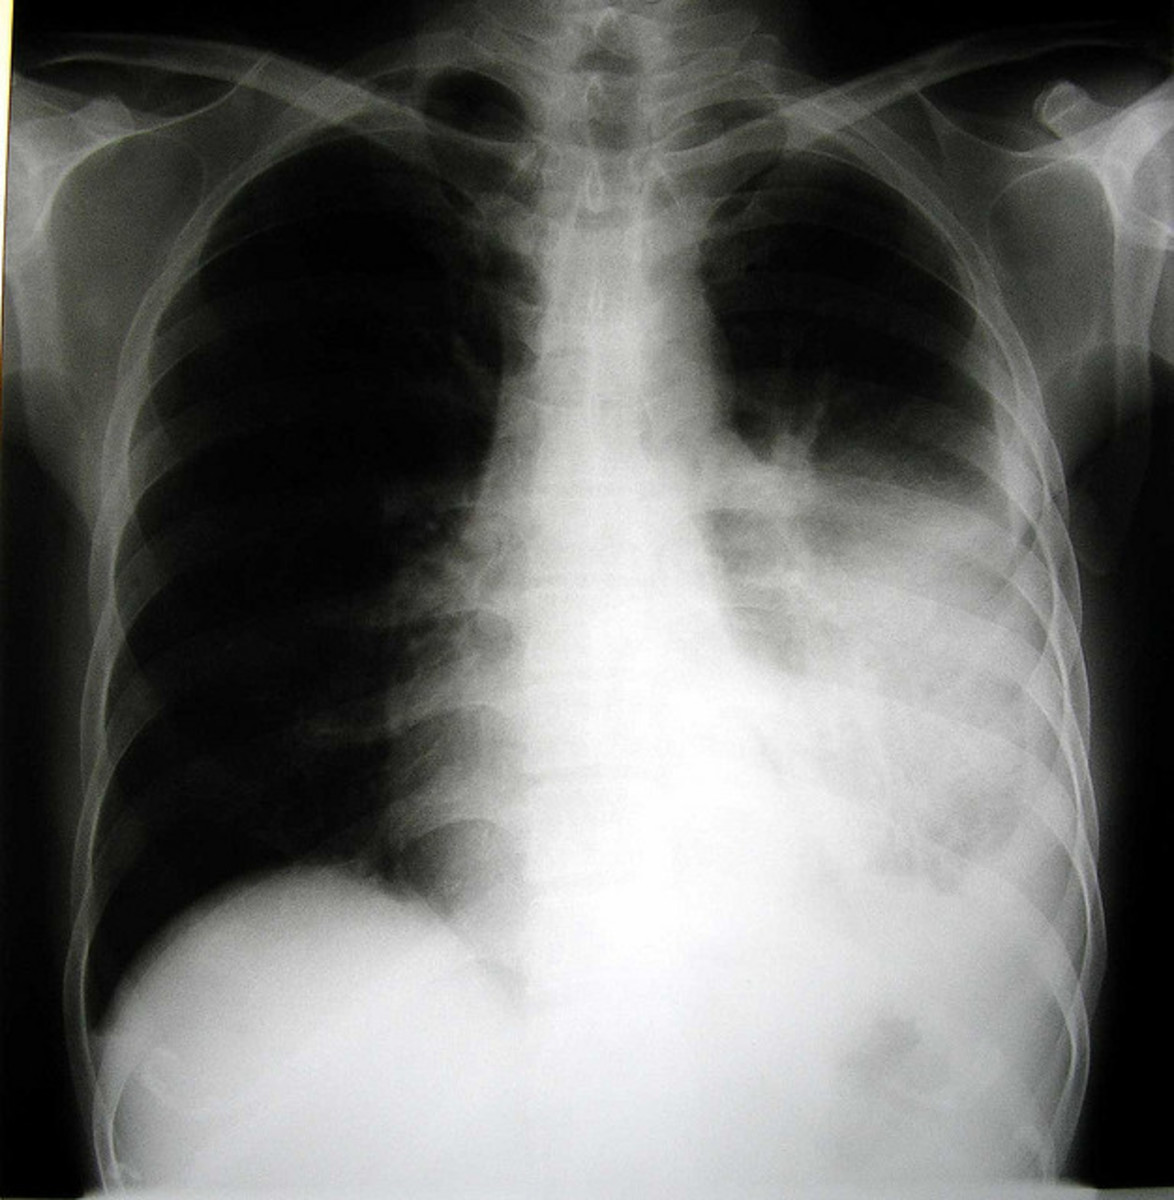 Above the effusion, where the lung is compressed, there may be bronchial breathing and egophony. In large effusion there may be tracheal deviation away from the effusion.